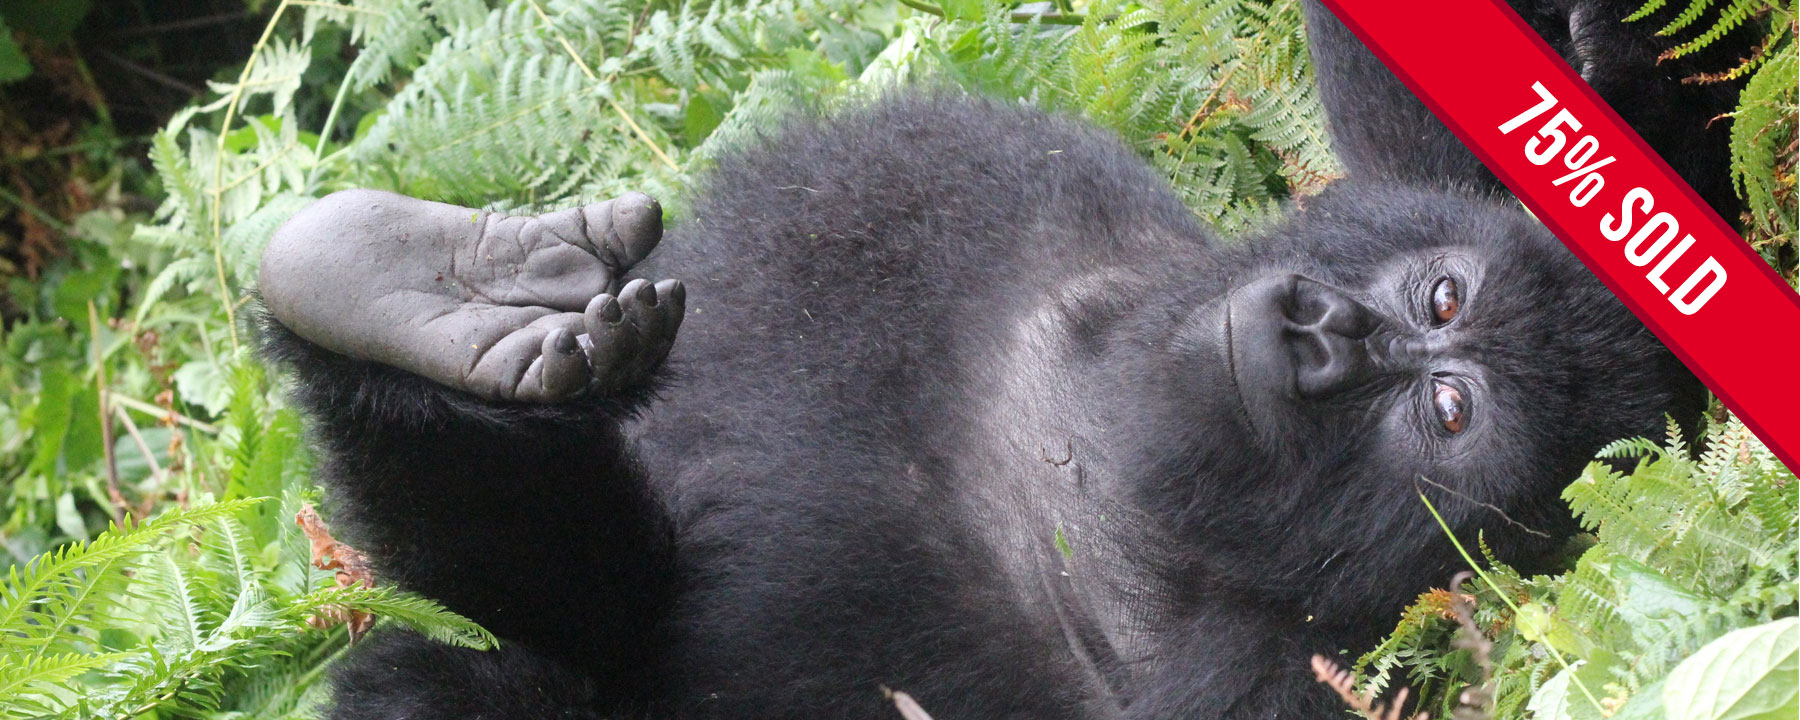 Gorillas and the Mara